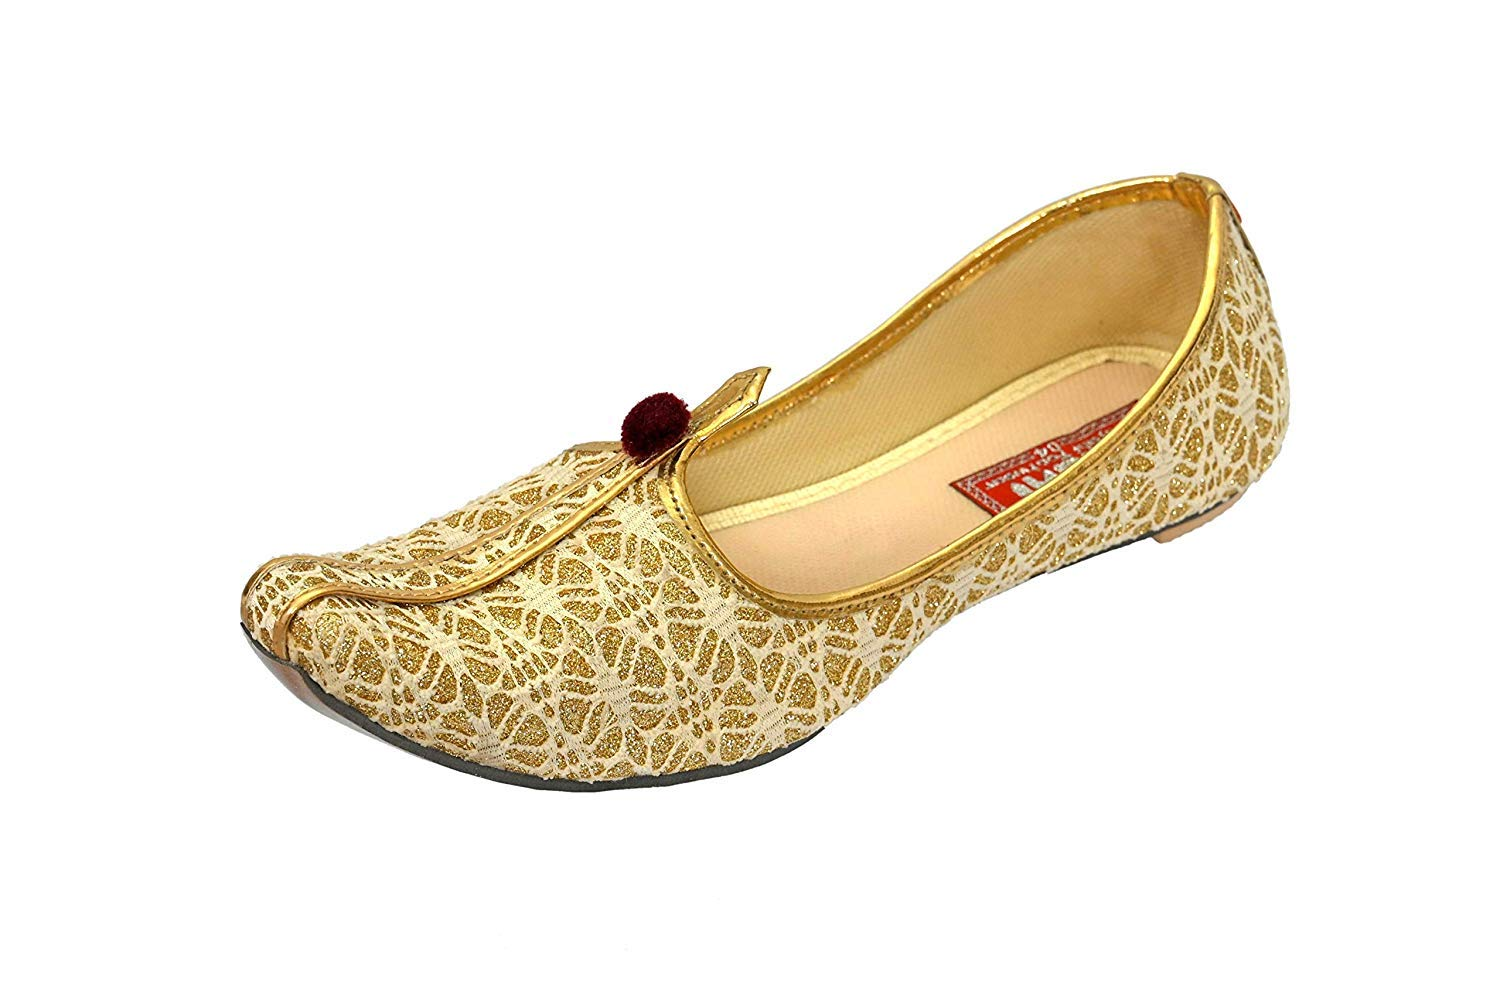 SHAHI PUNJABI FOOTWEAR Kids Golden Jutti Mojari Shoes for Boys Ethnic Mojari SPF-2011 (13C Ind/Age 6-7 yr) by SHAHI PUNJABI FOOTWEAR